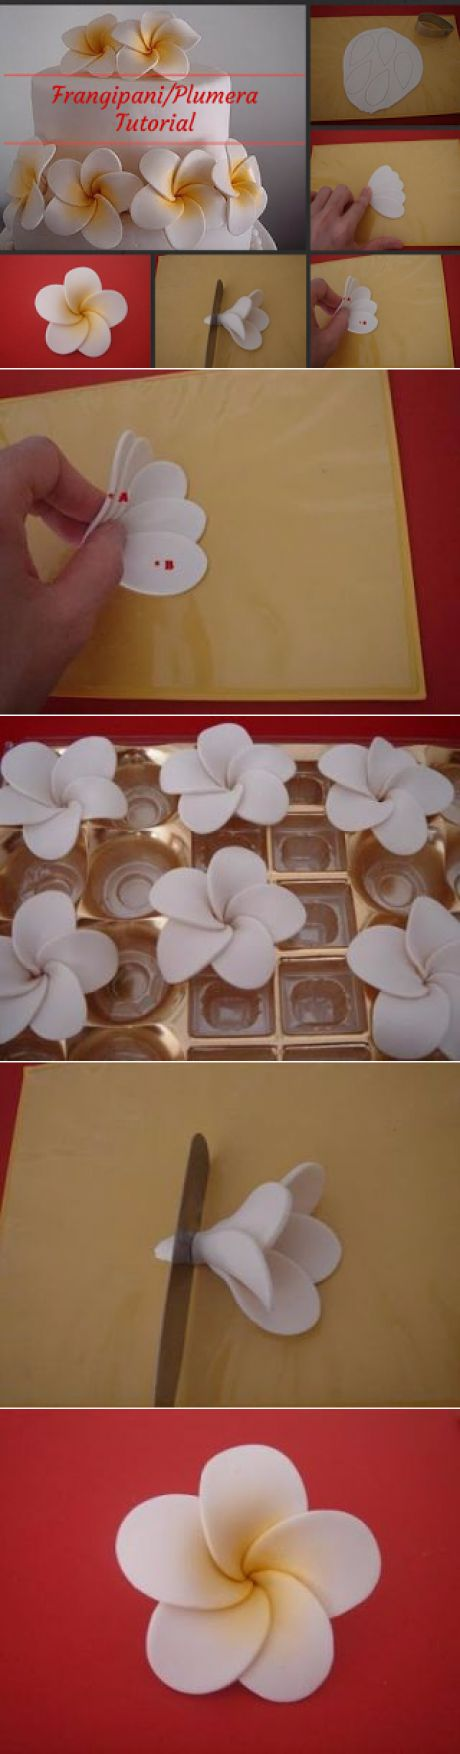 Of Wedding Cakes, Sweets and more...in Ipoh, Malaysia: Frangipani Tutorial